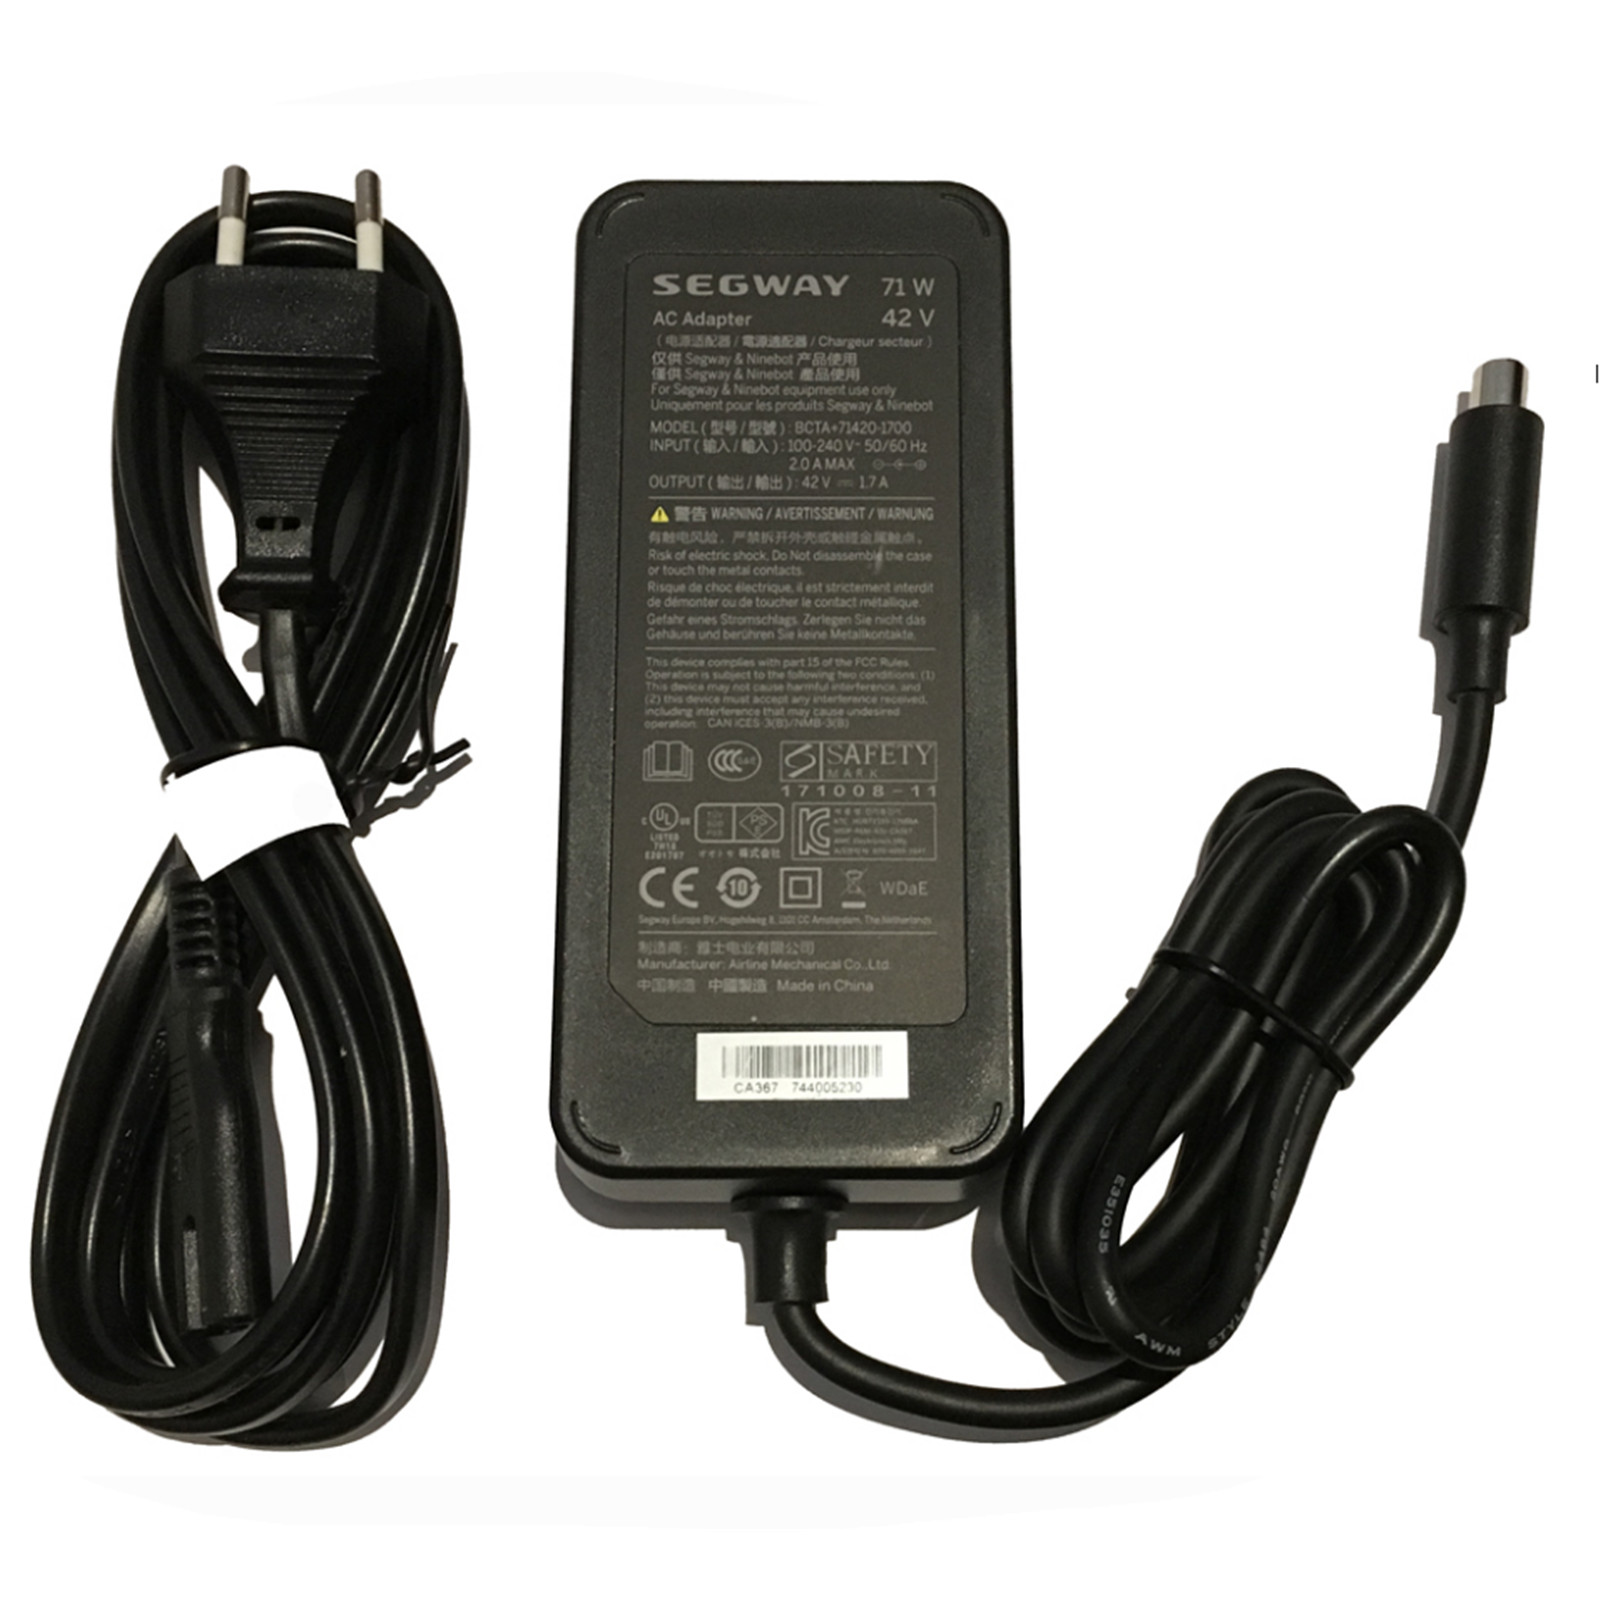 Buy the Segway ES1 / ES2 / ES4 Charger Assembly Power